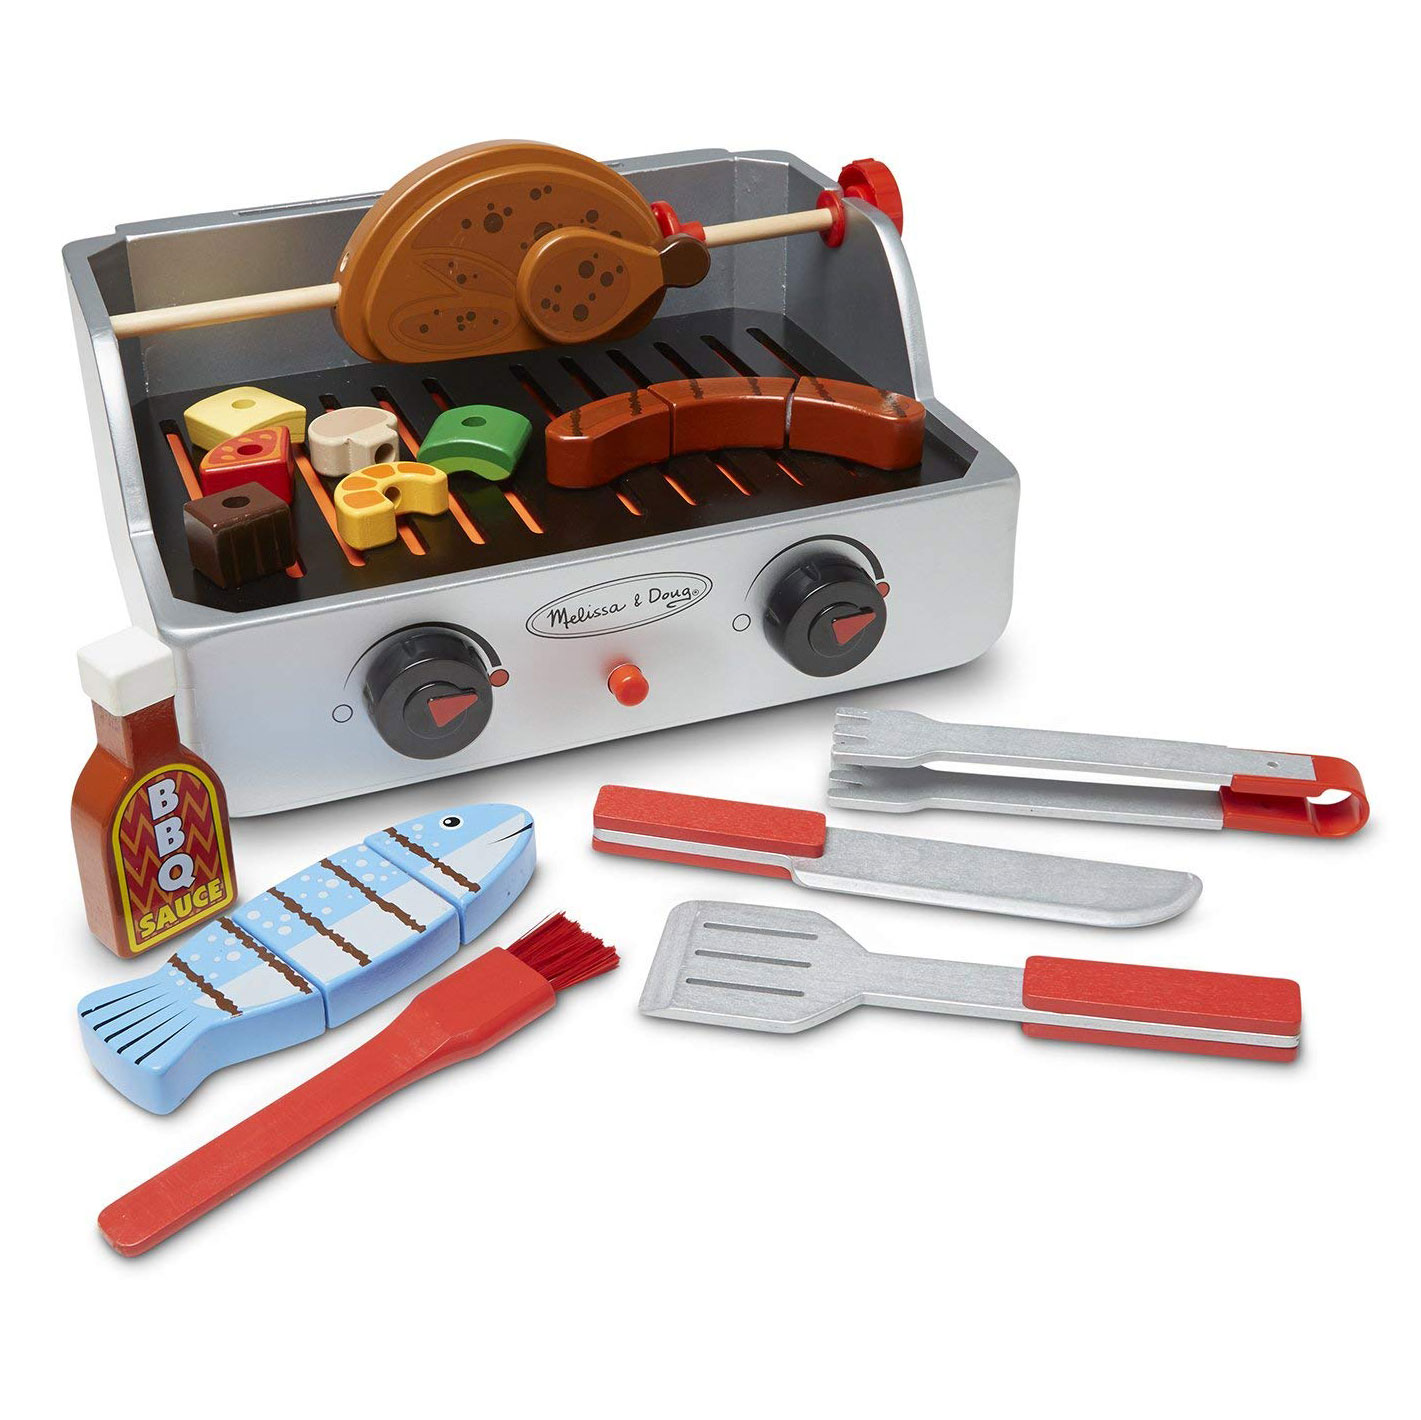 Rotisserie and Grill, Wooden Barbecue Play Food Set